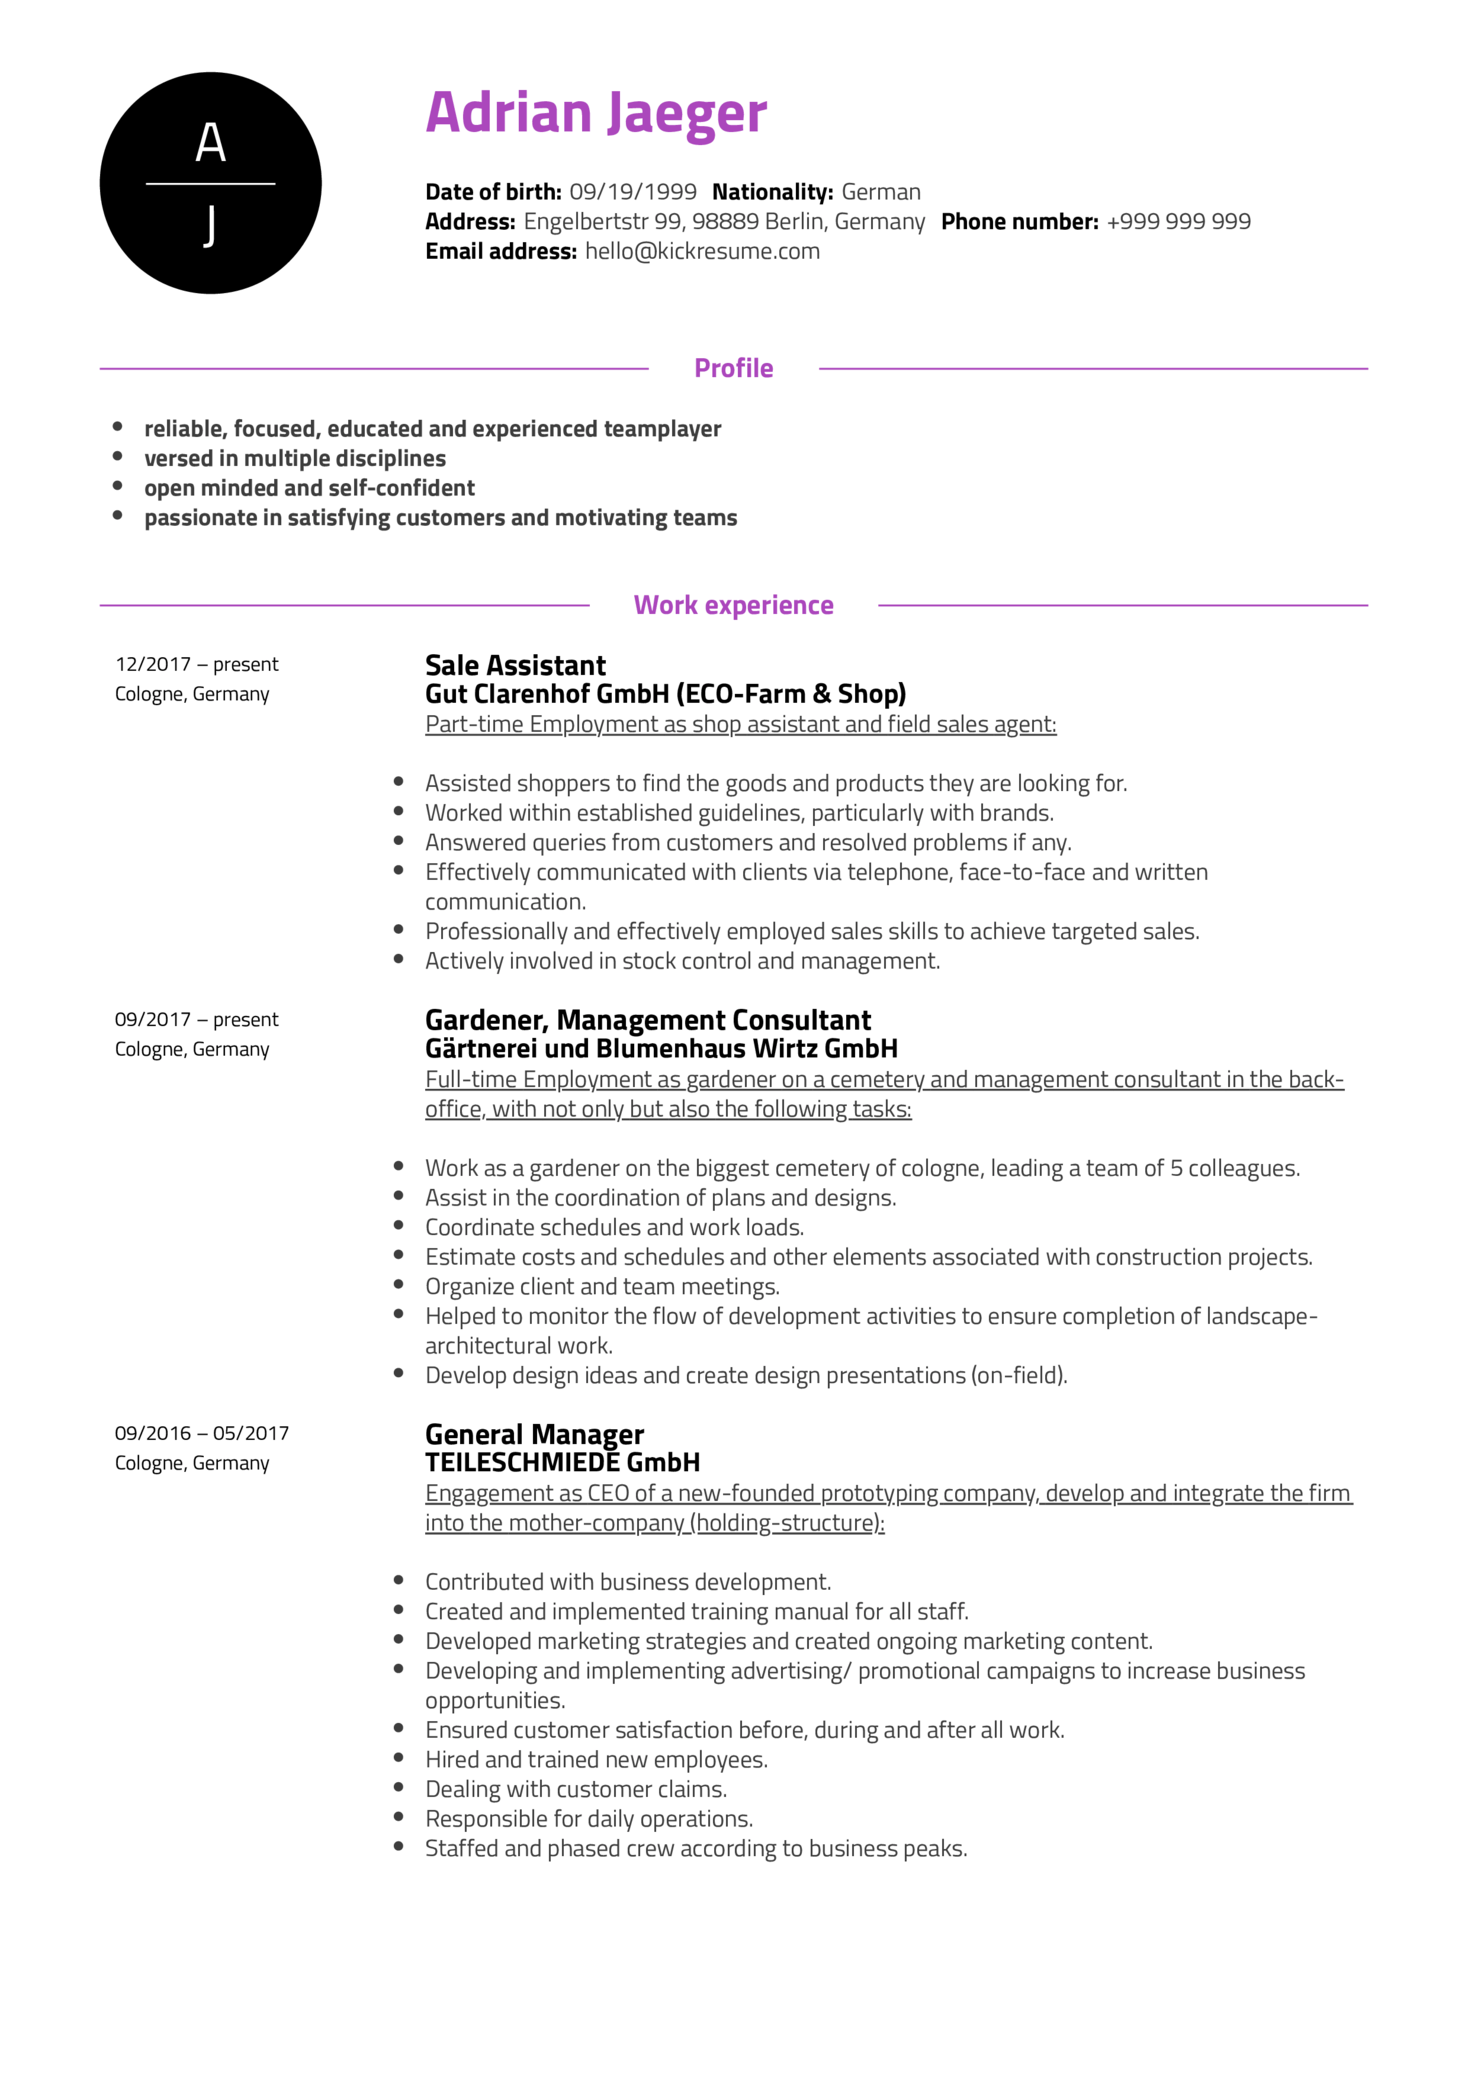 Customer Support Specialist Resume Example (Parte 1)